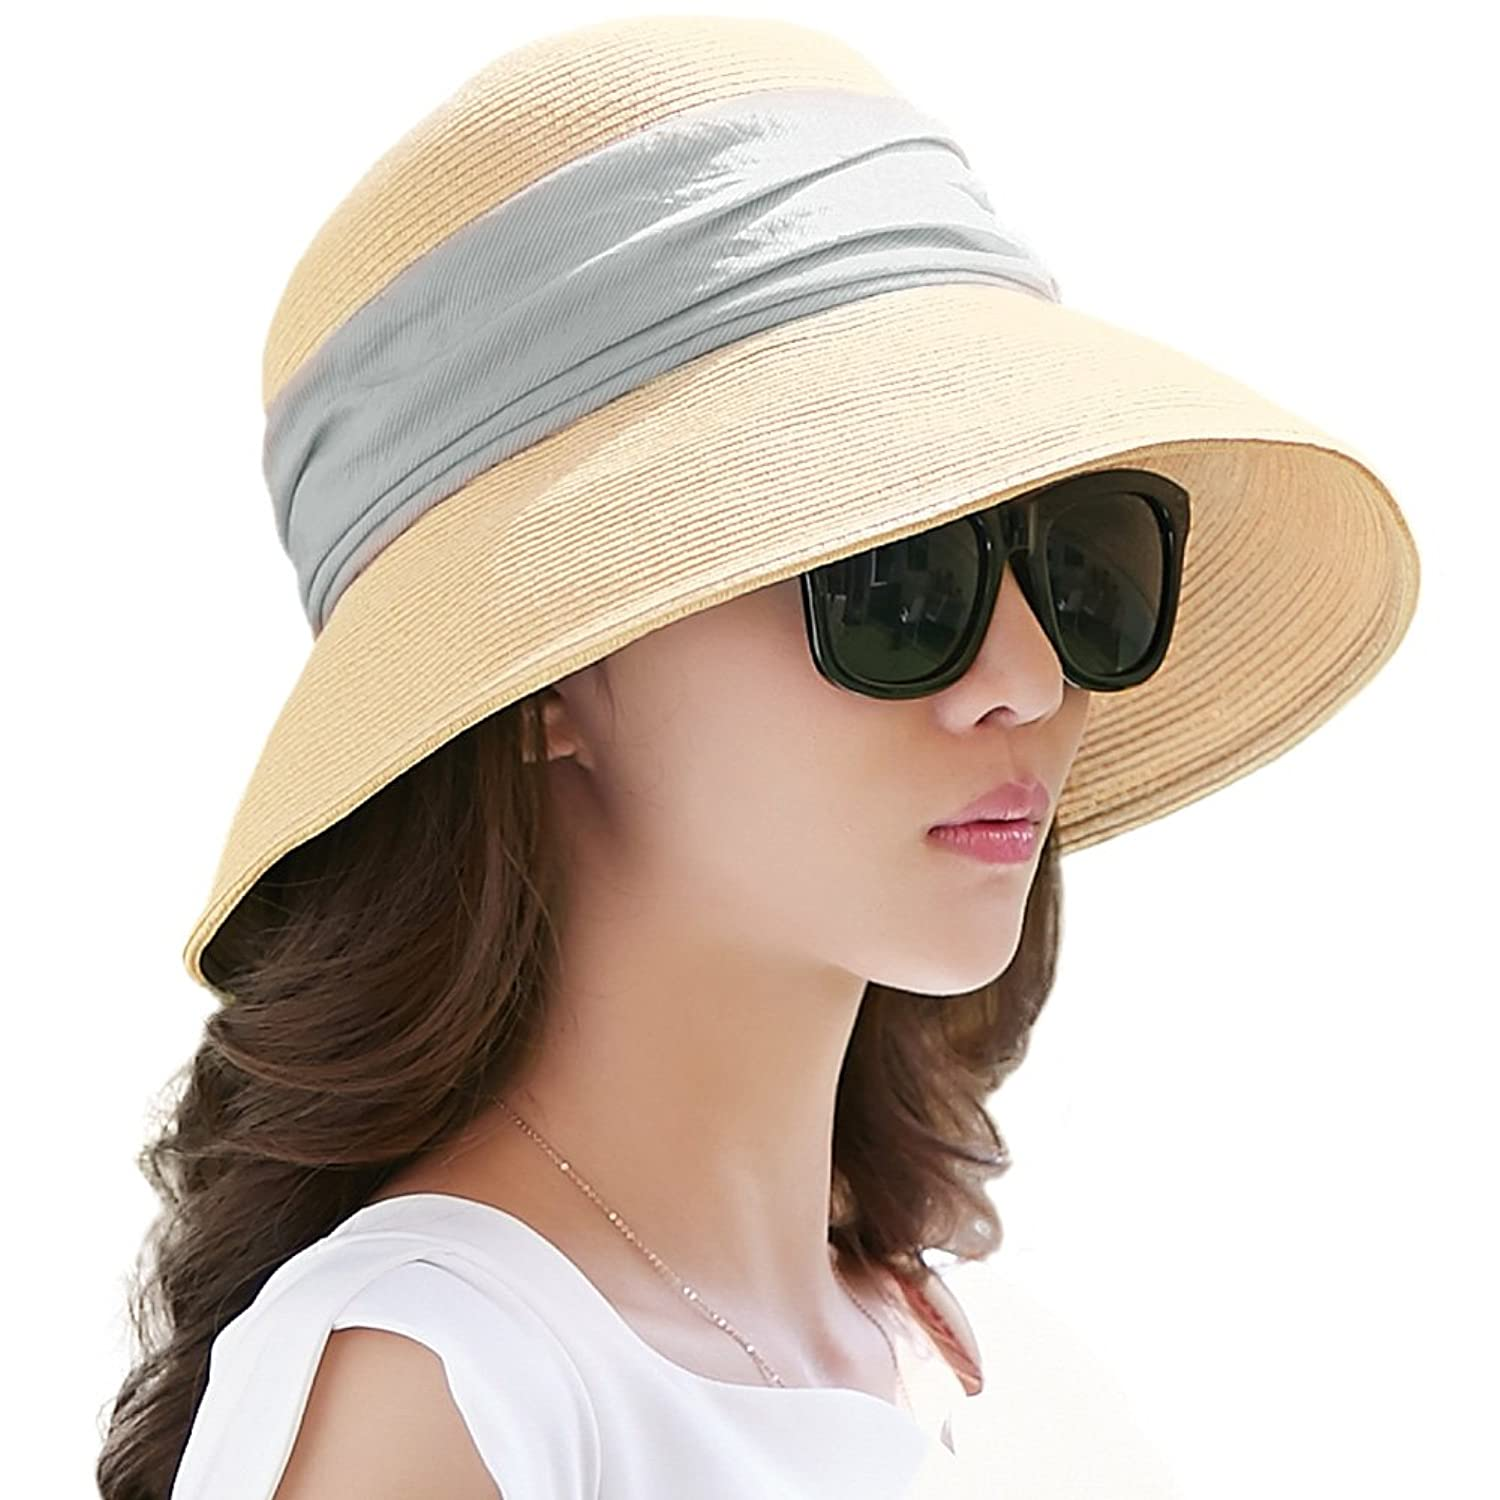 Details about Siggi Womens UPF 50+ Packable Summer Sun Straw Hat Wide Brim  Foldable Adjustable 05928f1bc1